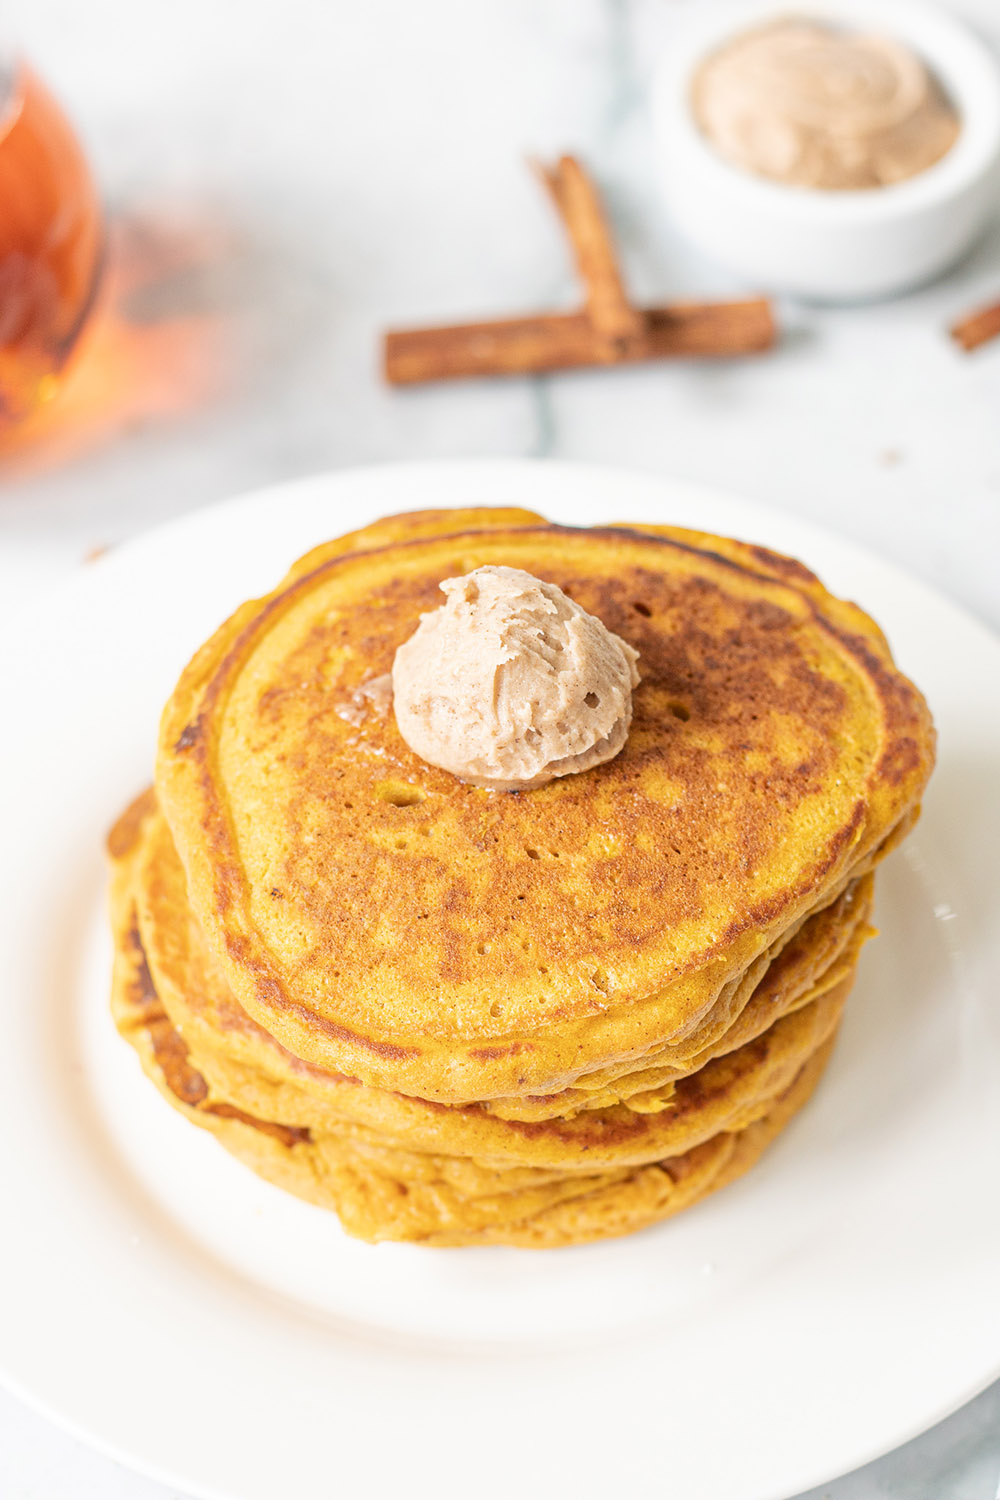 Pancakes stacked on a plate with butter and cinnamon sticks on the table.